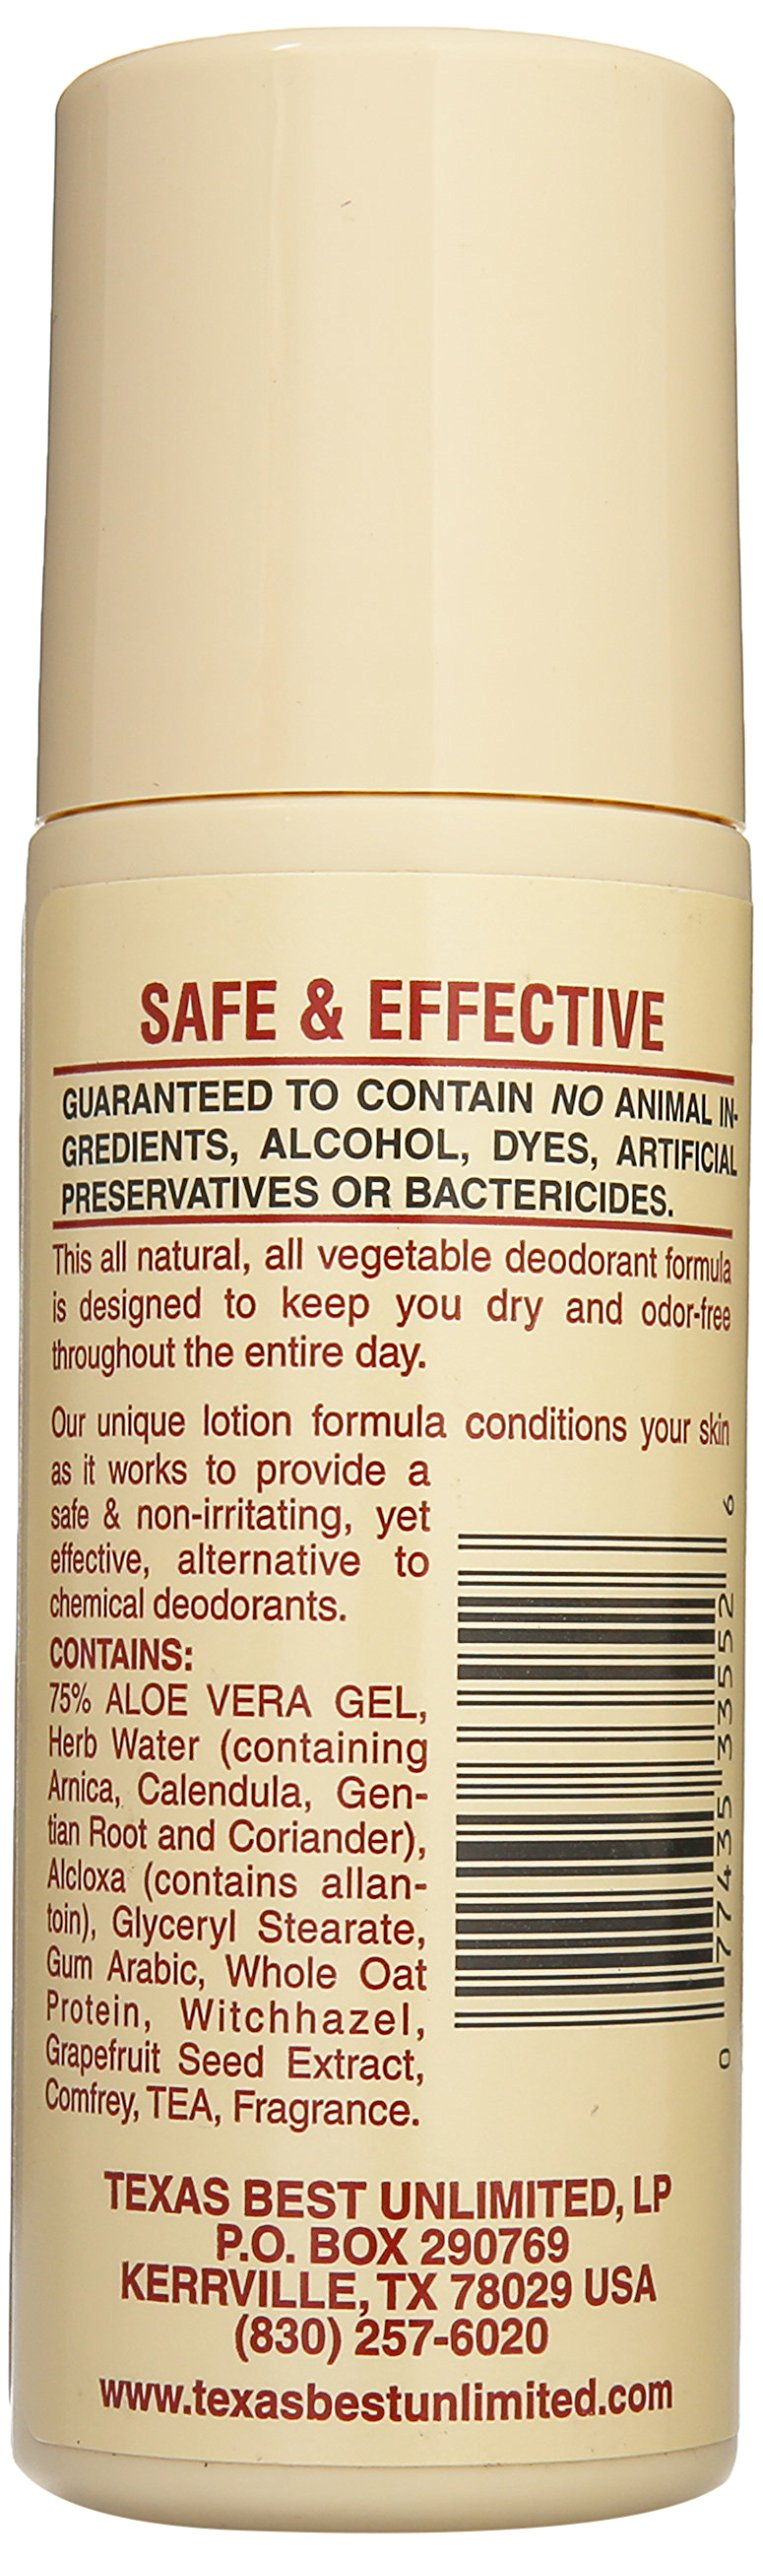 Alvera All Natural Roll-on Deodorant Aloe and Almonds - 3 Oz, 3 Fluid Ounce by Alvera (Image #3)